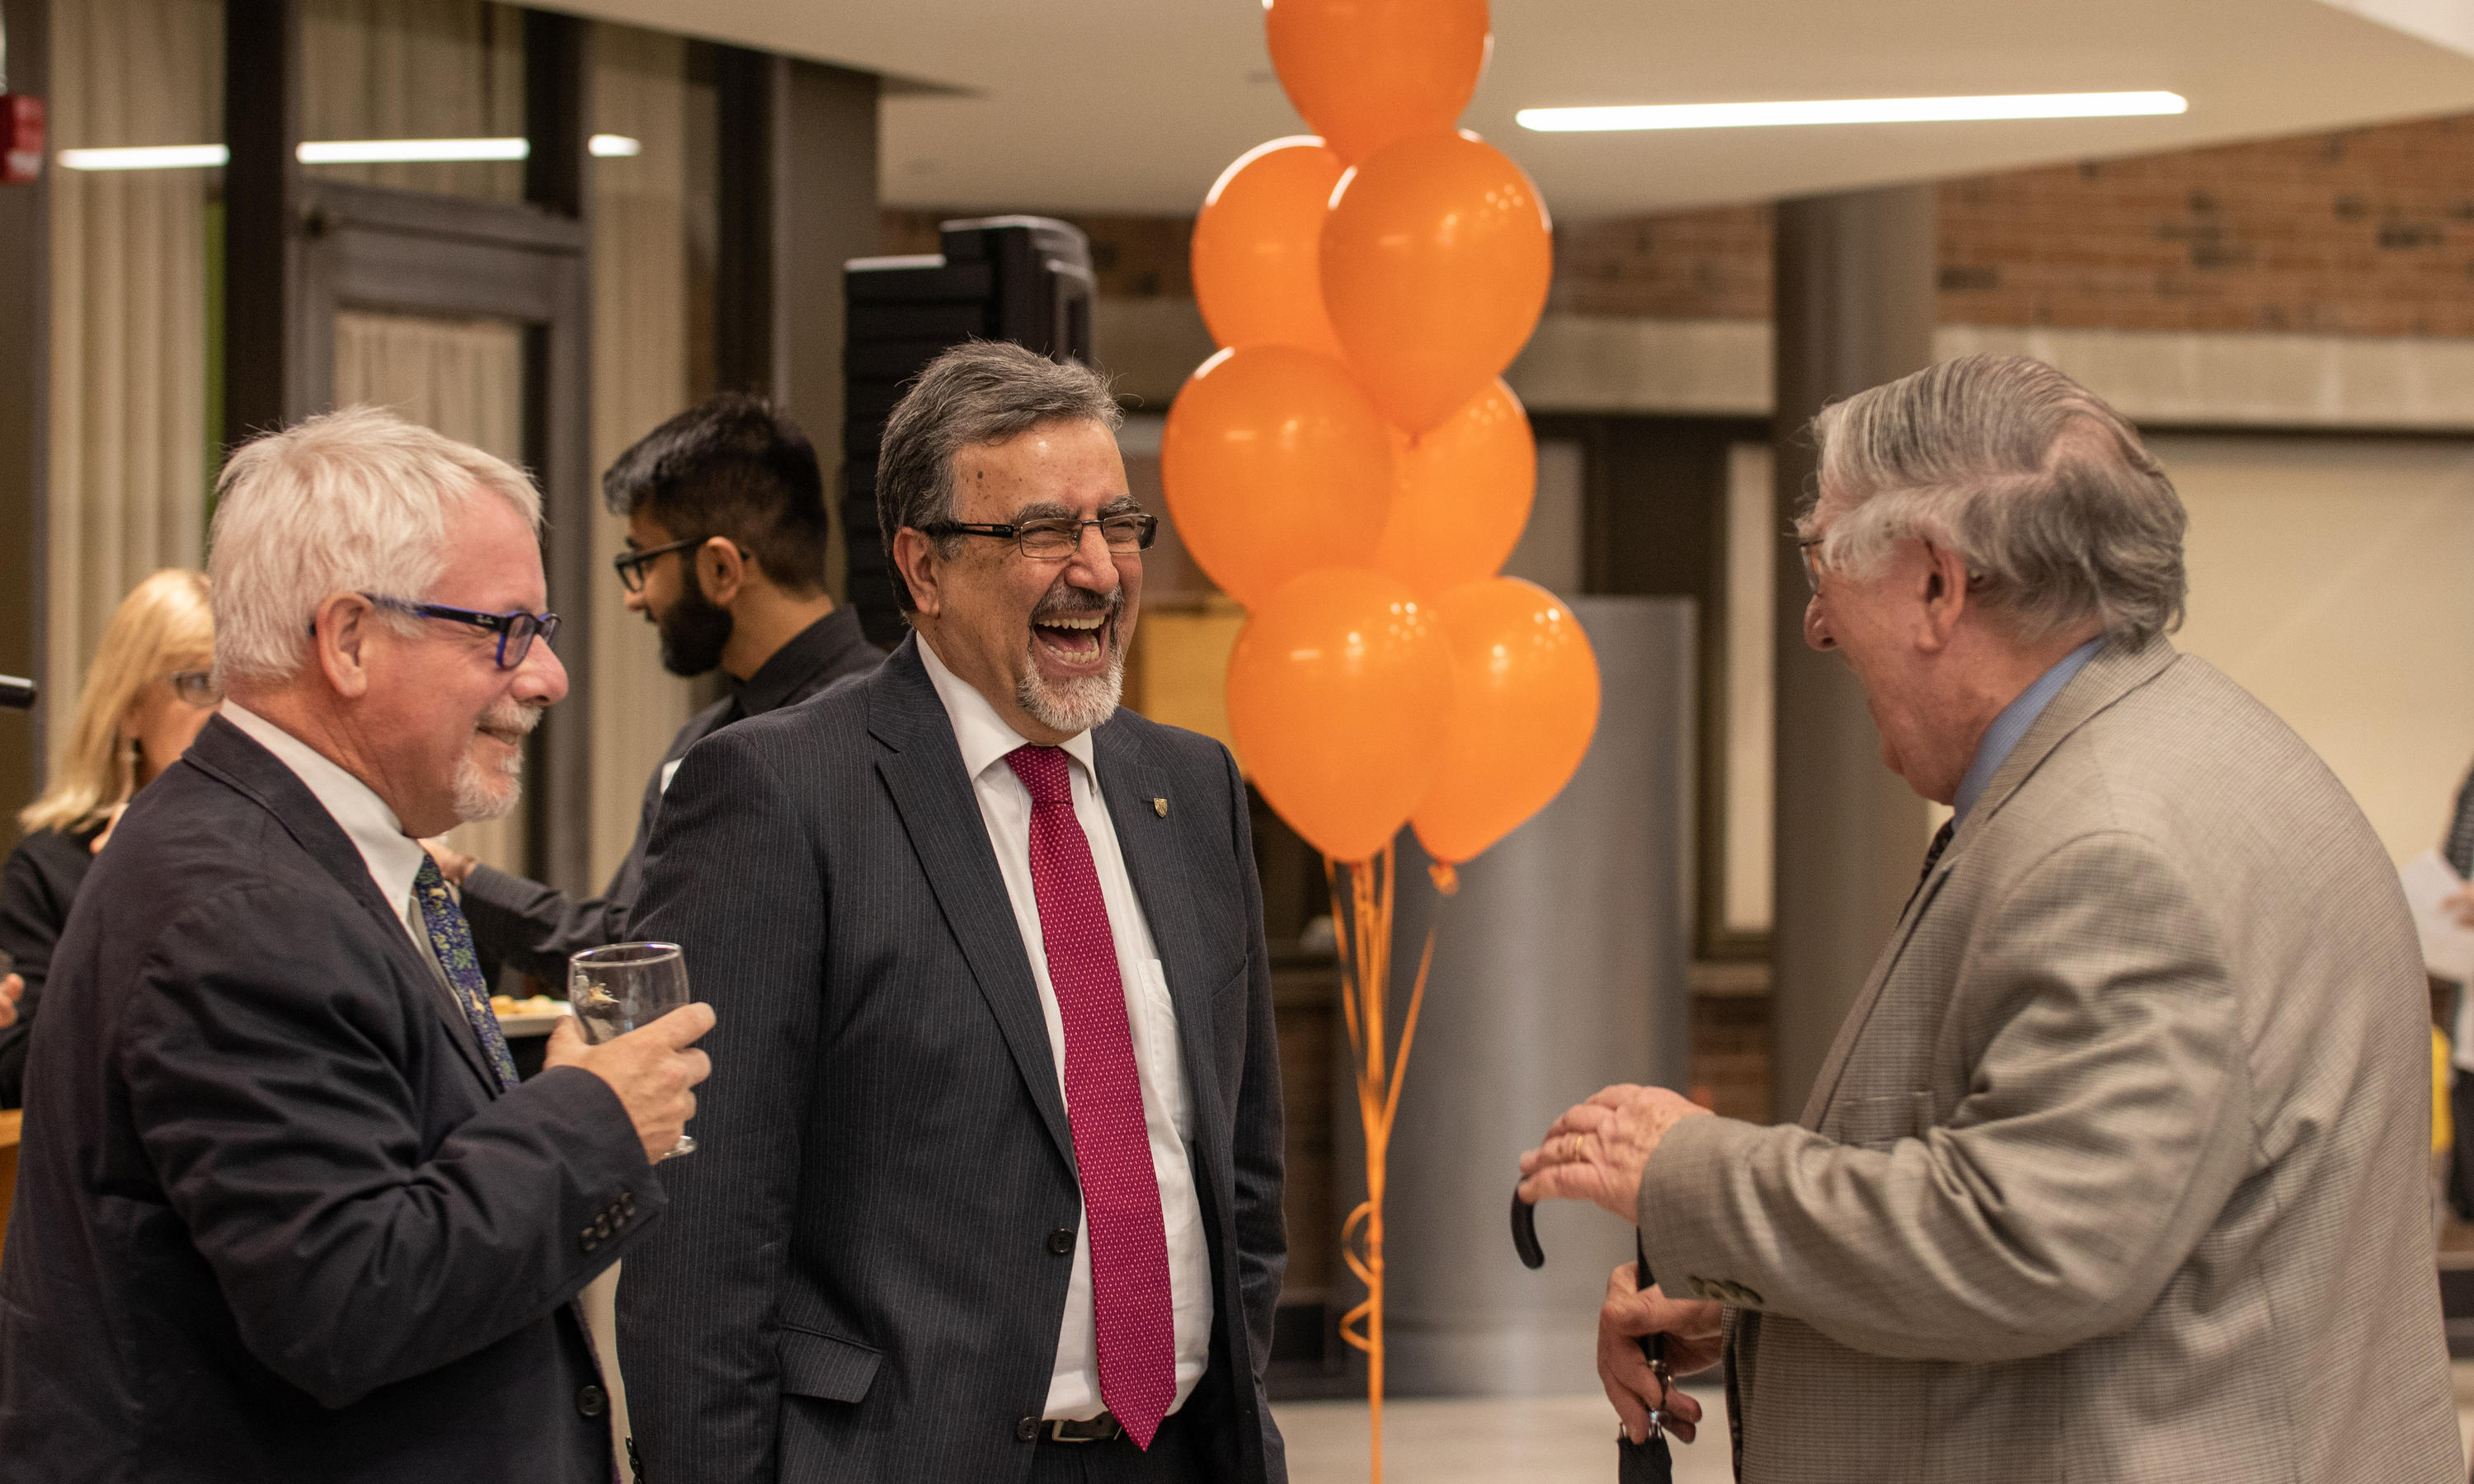 dean of arts, president and provost laugh together